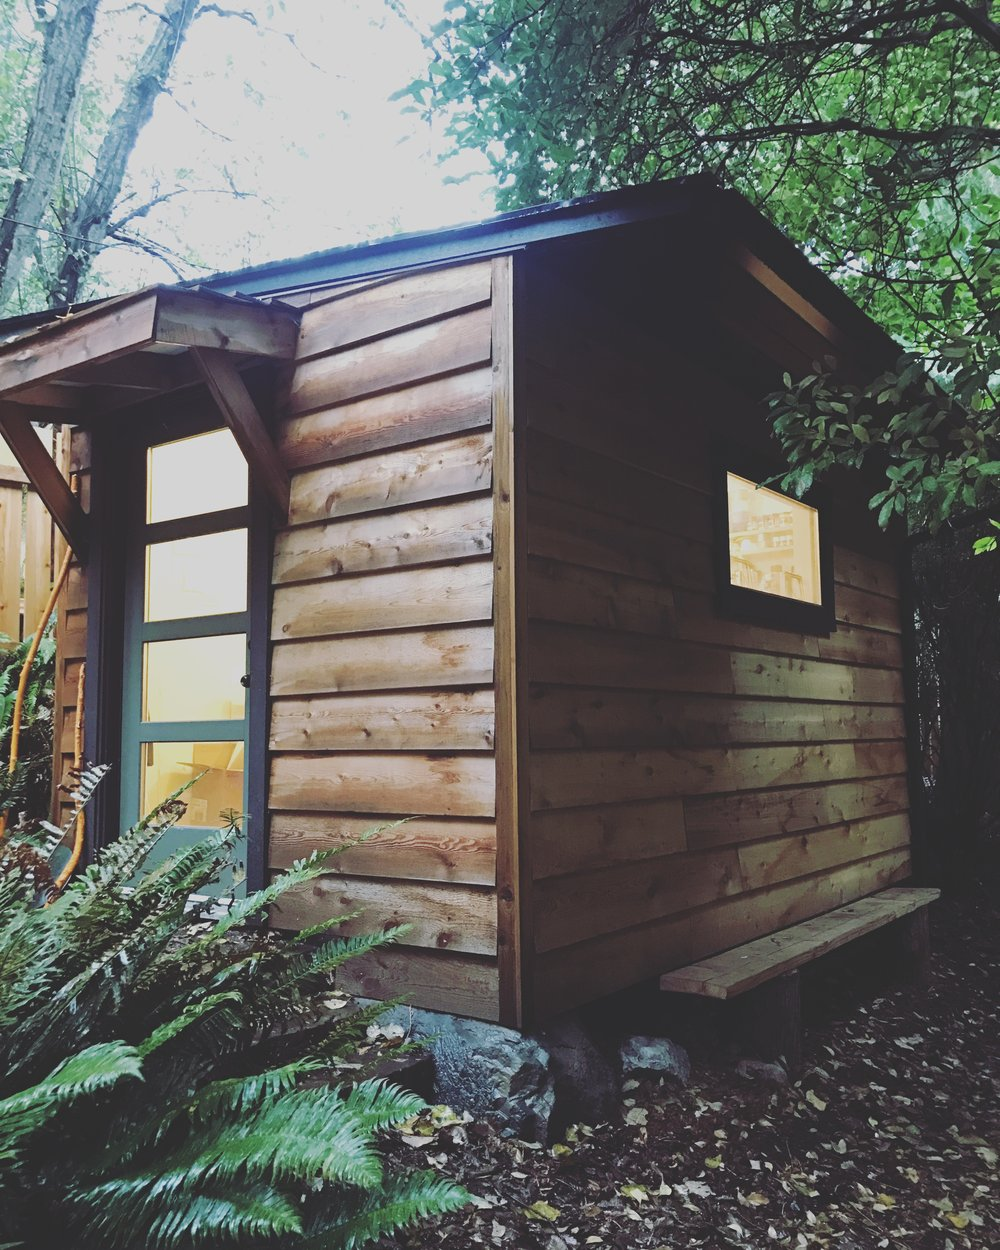 Studio on Bowen Island, BC